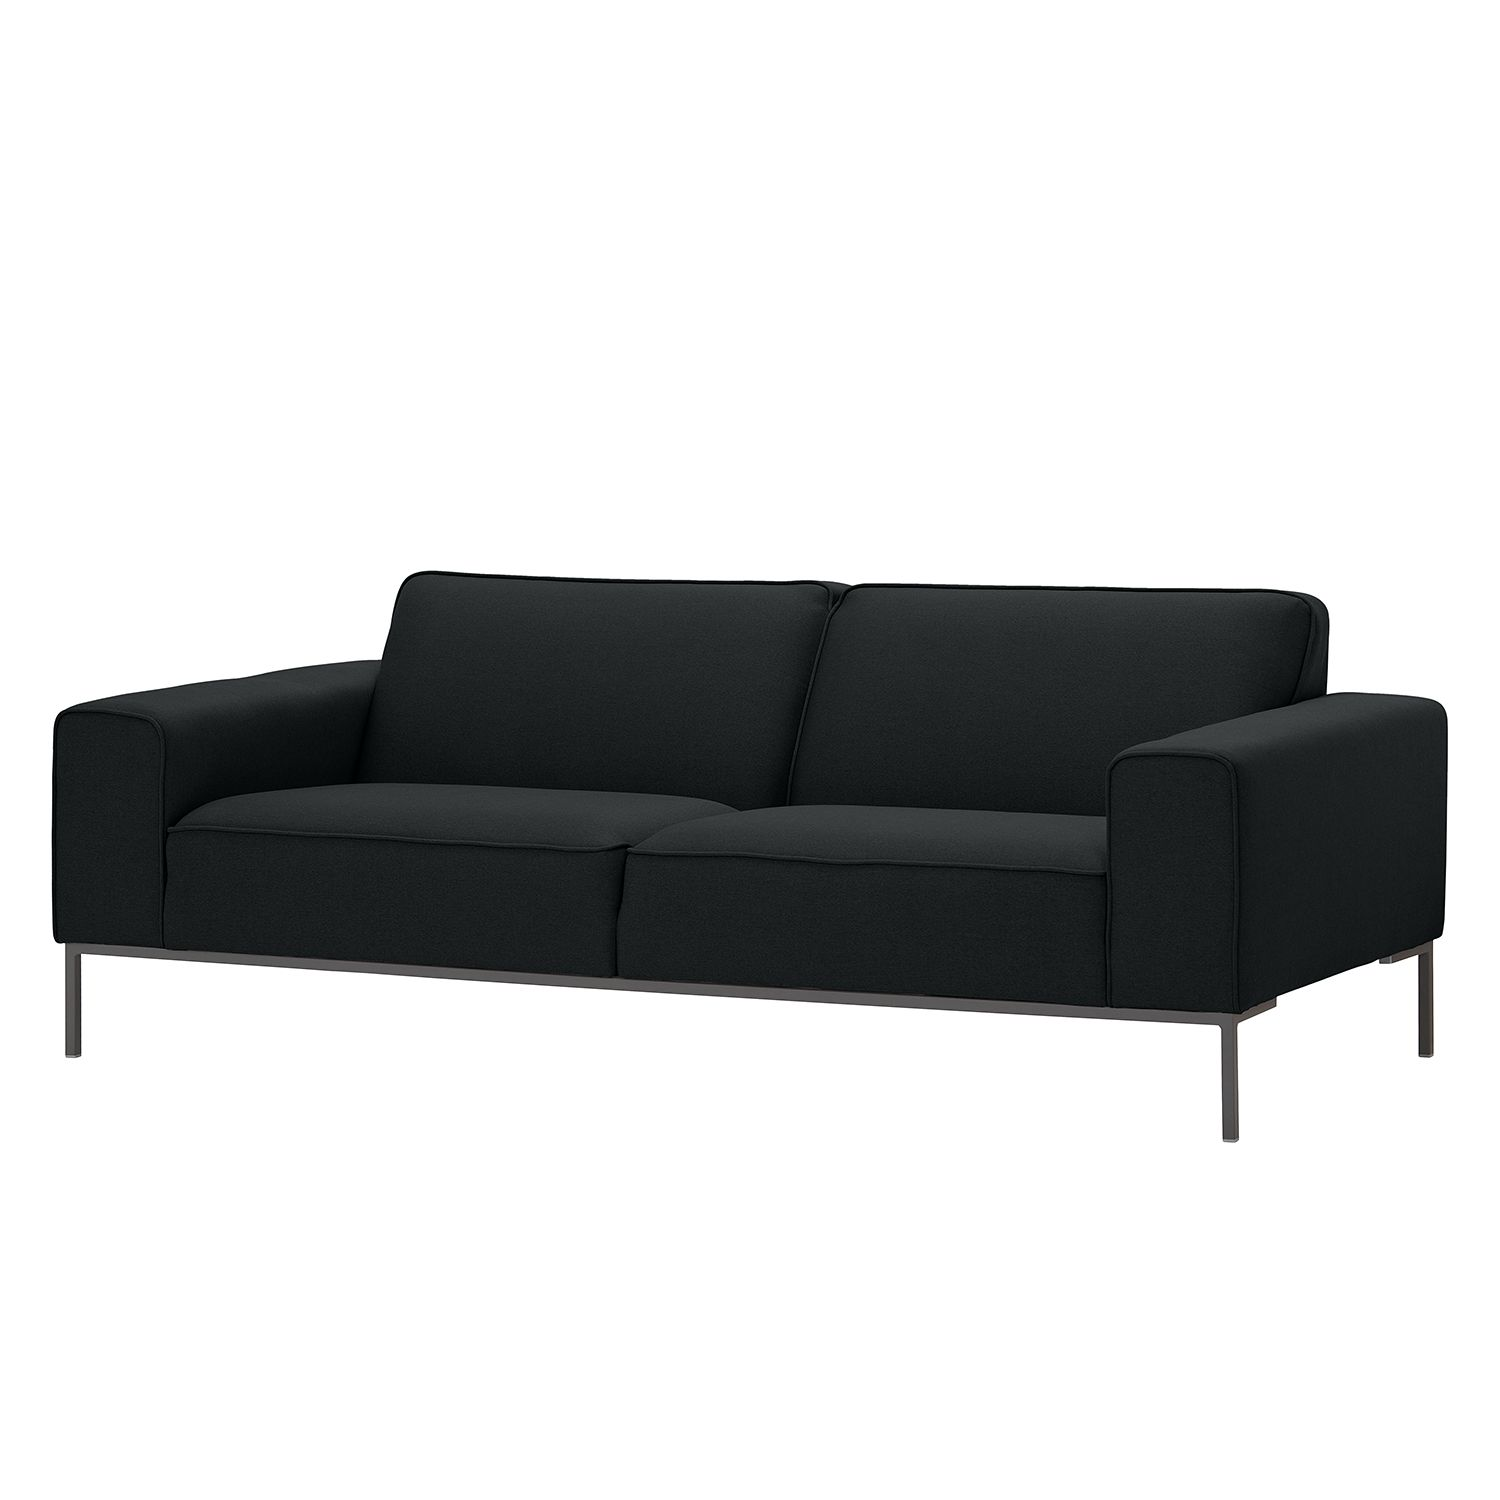 sofa ampio 3 sitzer webstoff grau stoff floreana anthrazit studio copenhagen online. Black Bedroom Furniture Sets. Home Design Ideas